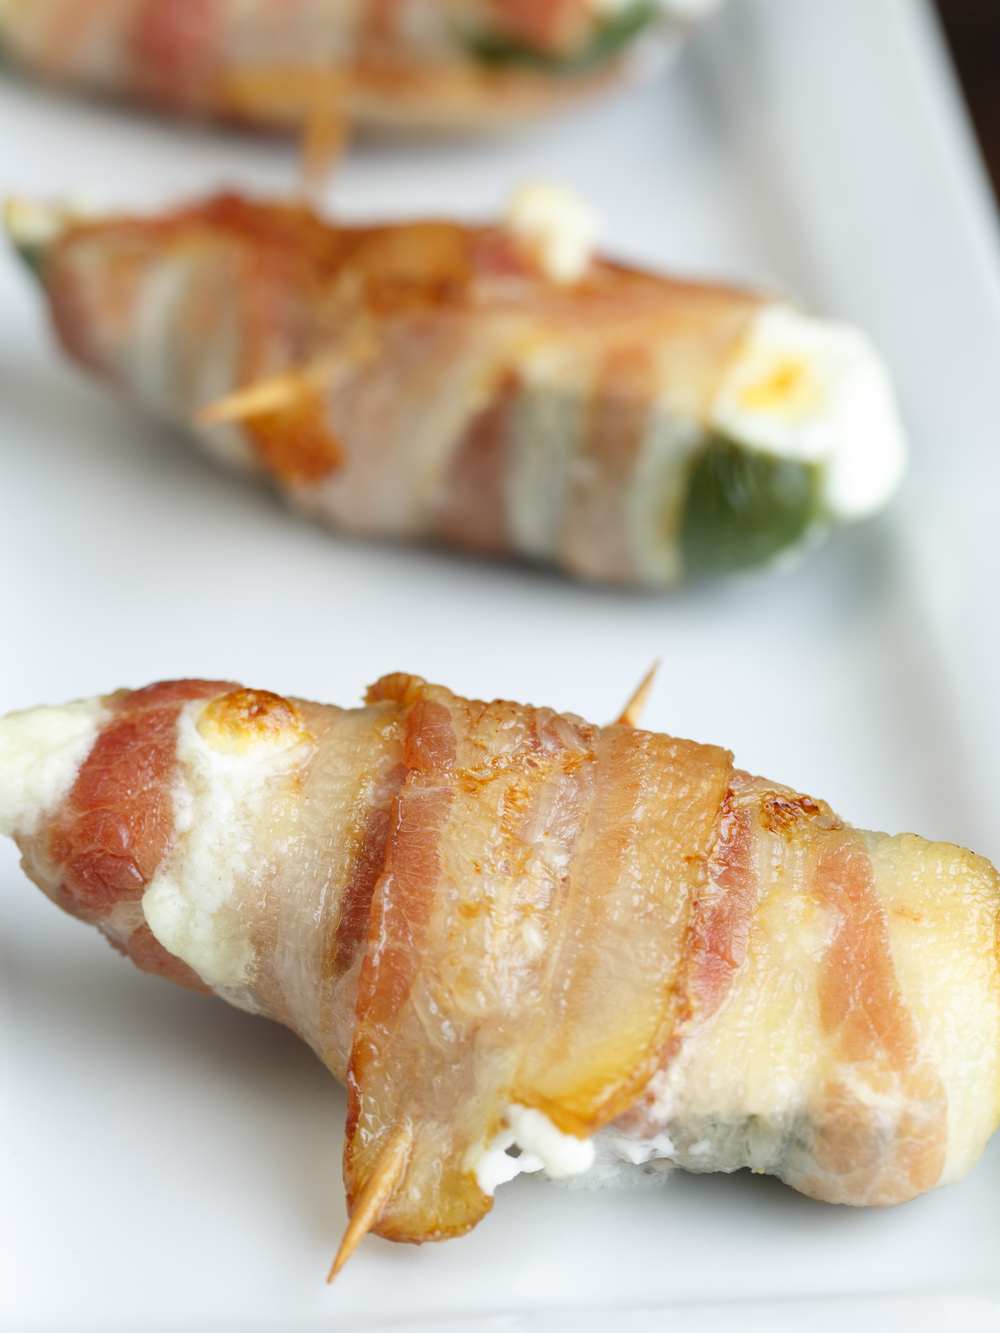 Jalapeño poppers my way